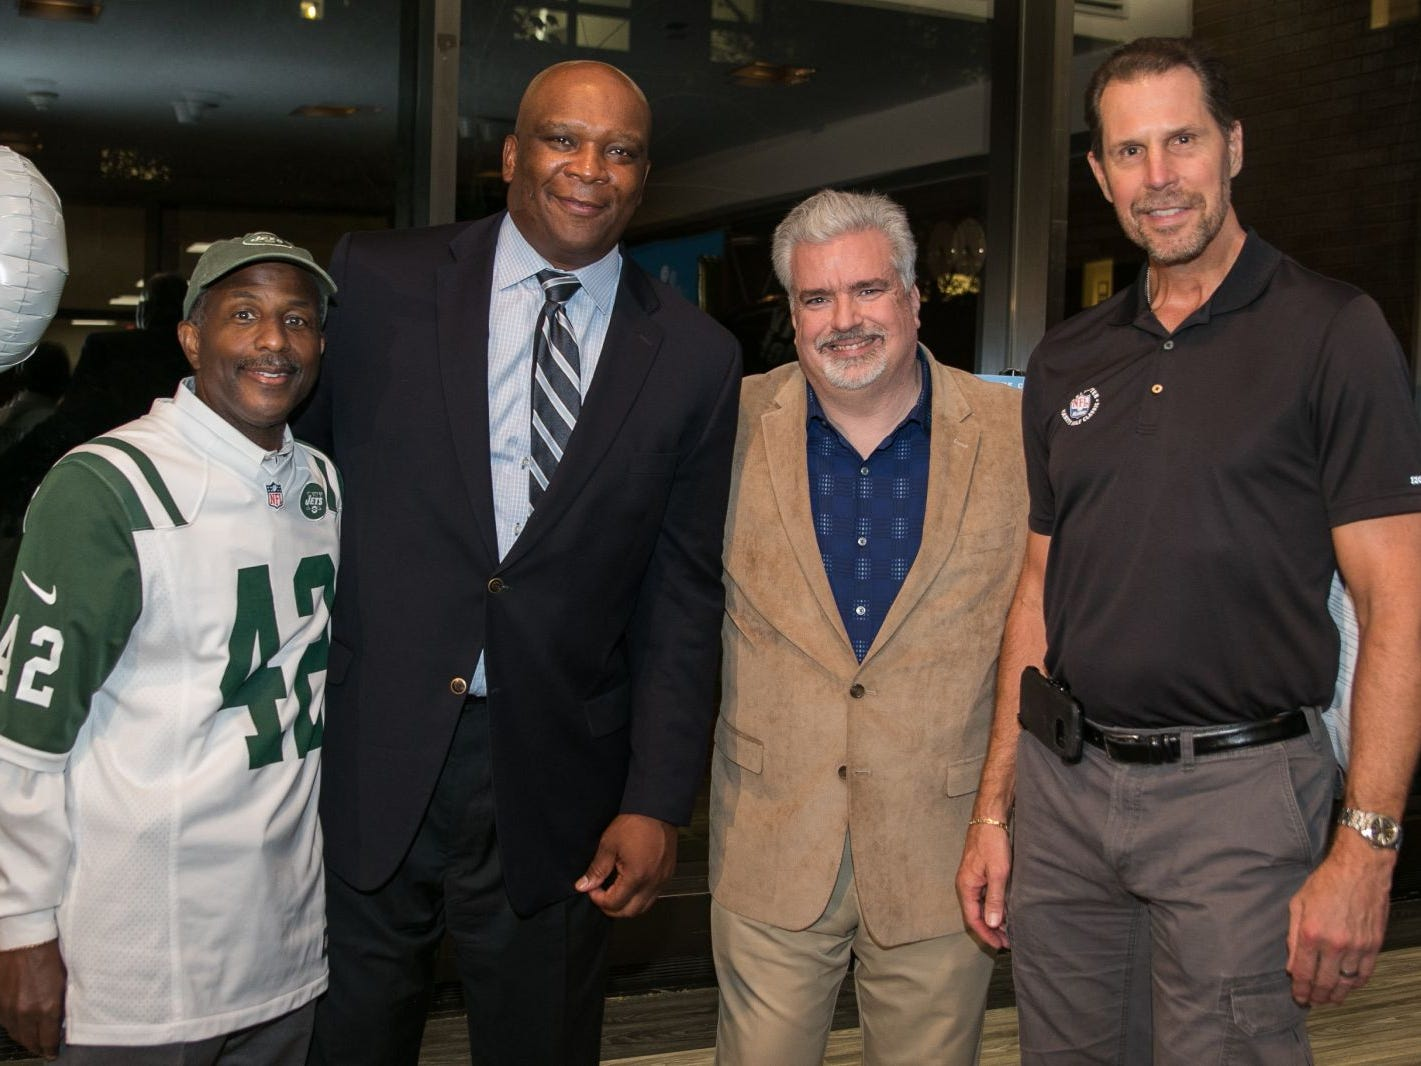 Former NY Jet Bruce Harper, Former NY Giant Howard Cross, ESPN Radio Don La Greca, Former NY Giant Karl Nelson. Englewood Health hosted its Men's Health and Football event with former Jets and Giants players and Don La Greca from ESPN radio. Attendees watched the Thursday night football game while receiving advice about staying healthy and tackling health problems early on. 09/20/2018